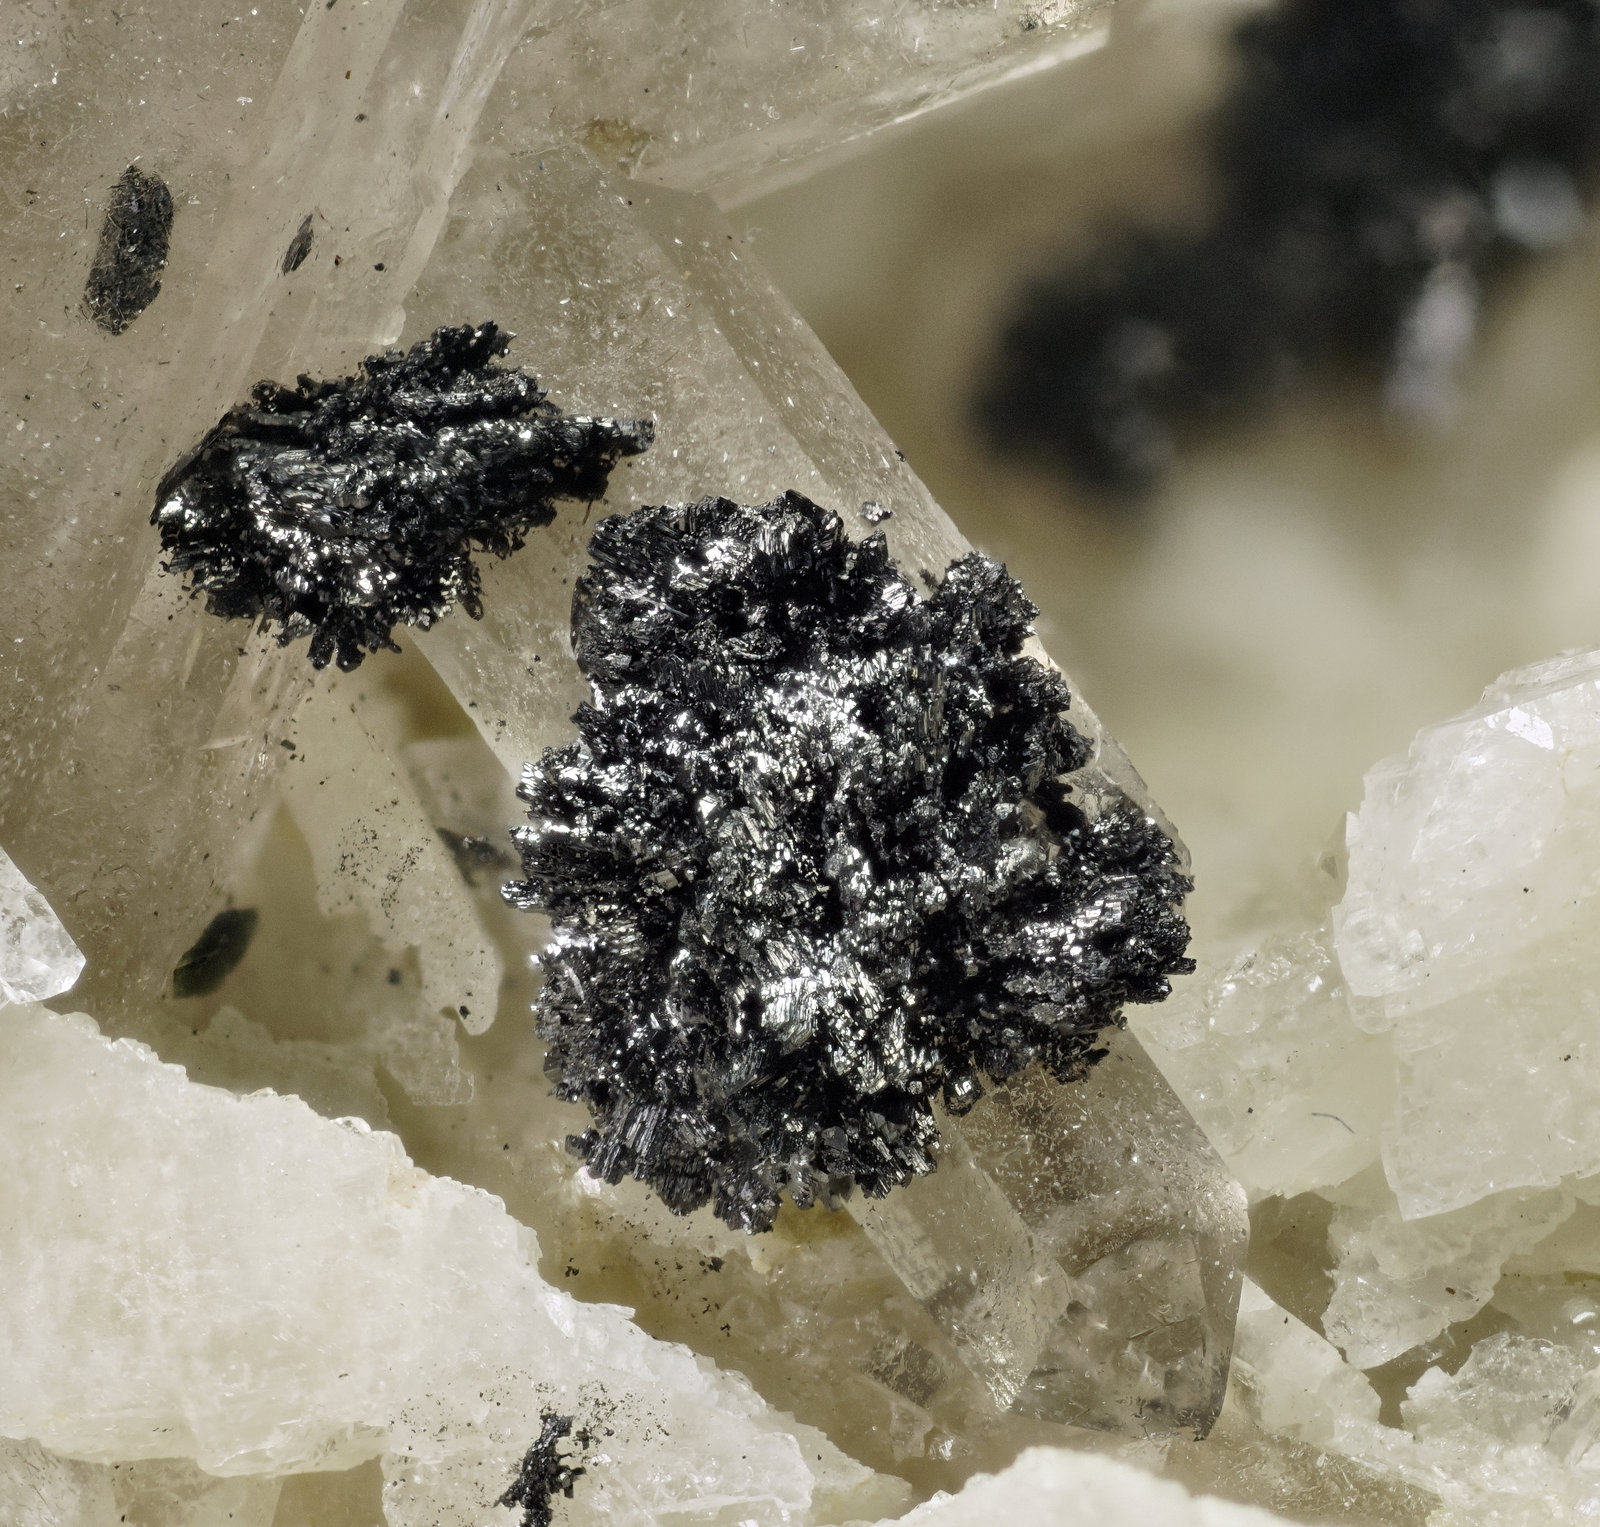 specimens/s_imagesAI6/Pyrophanite-TQ46AI6_5476_d.jpg